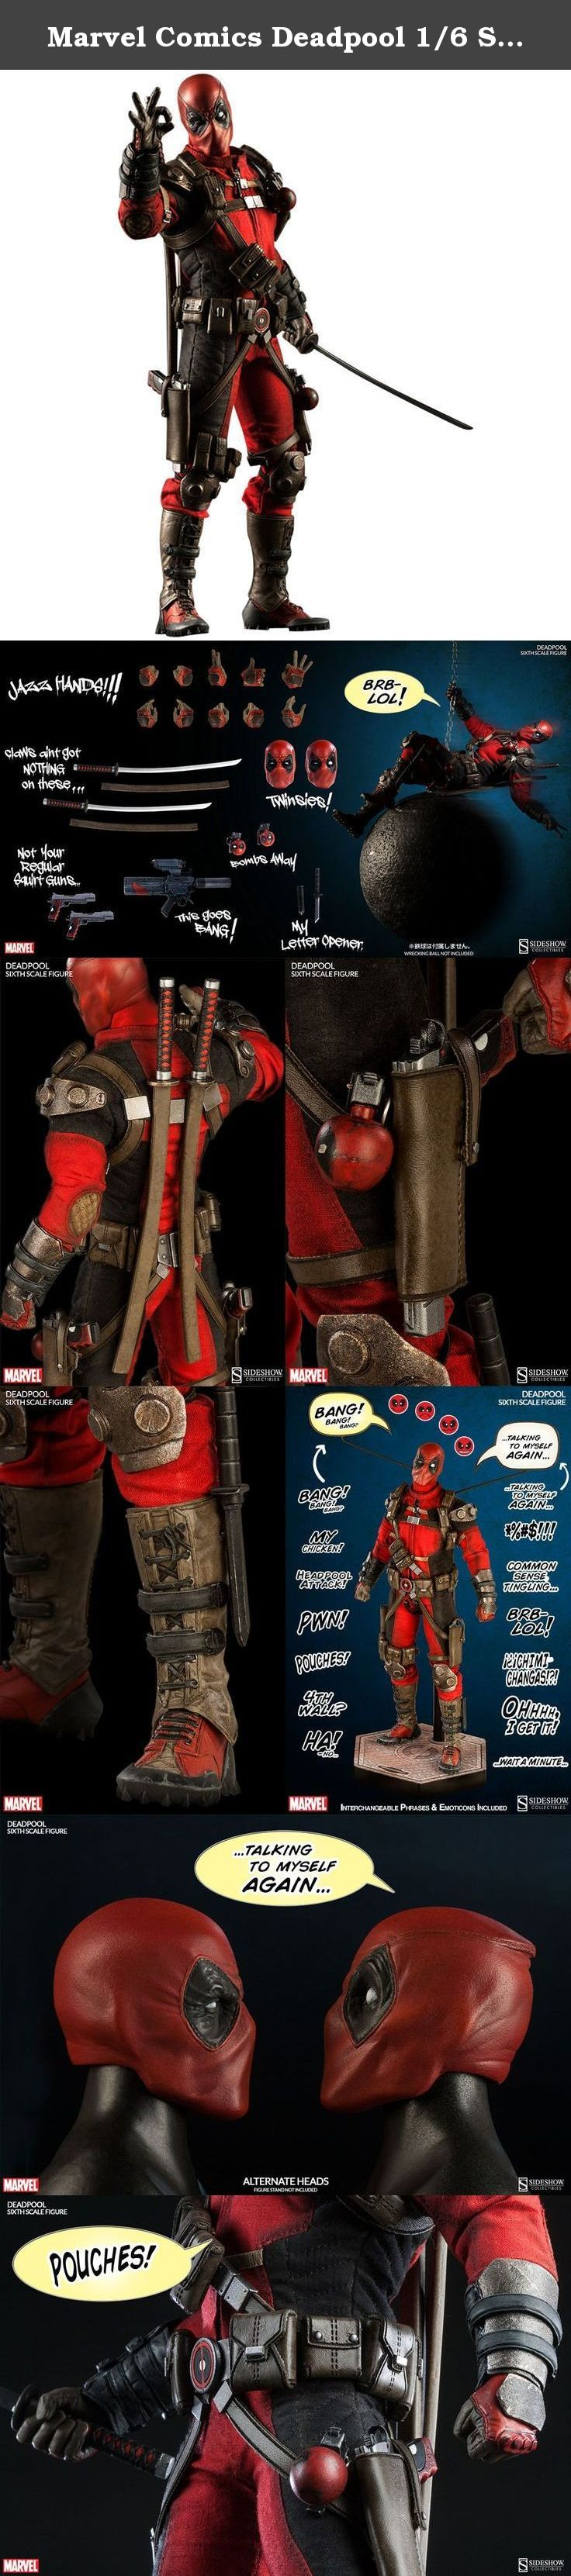 "Marvel Comics Deadpool 1/6 Scale Plastic Painted Figure by Sideshow. Launching Sideshow Collectibles' highly-anticipated Marvel Sixth Scale collection...""Here comes DEADPOOL!""Armed to the teeth with guns, puns, and things that go boom, Sideshow's fully articulated Deadpool Sixth Scale Figure is ready to break through any obstacle - especially the proverbial fourth wall.Decked out in his iconic hand-tailored red and black costume, super-studly Wade Wilson comes with two handsome portraits…"